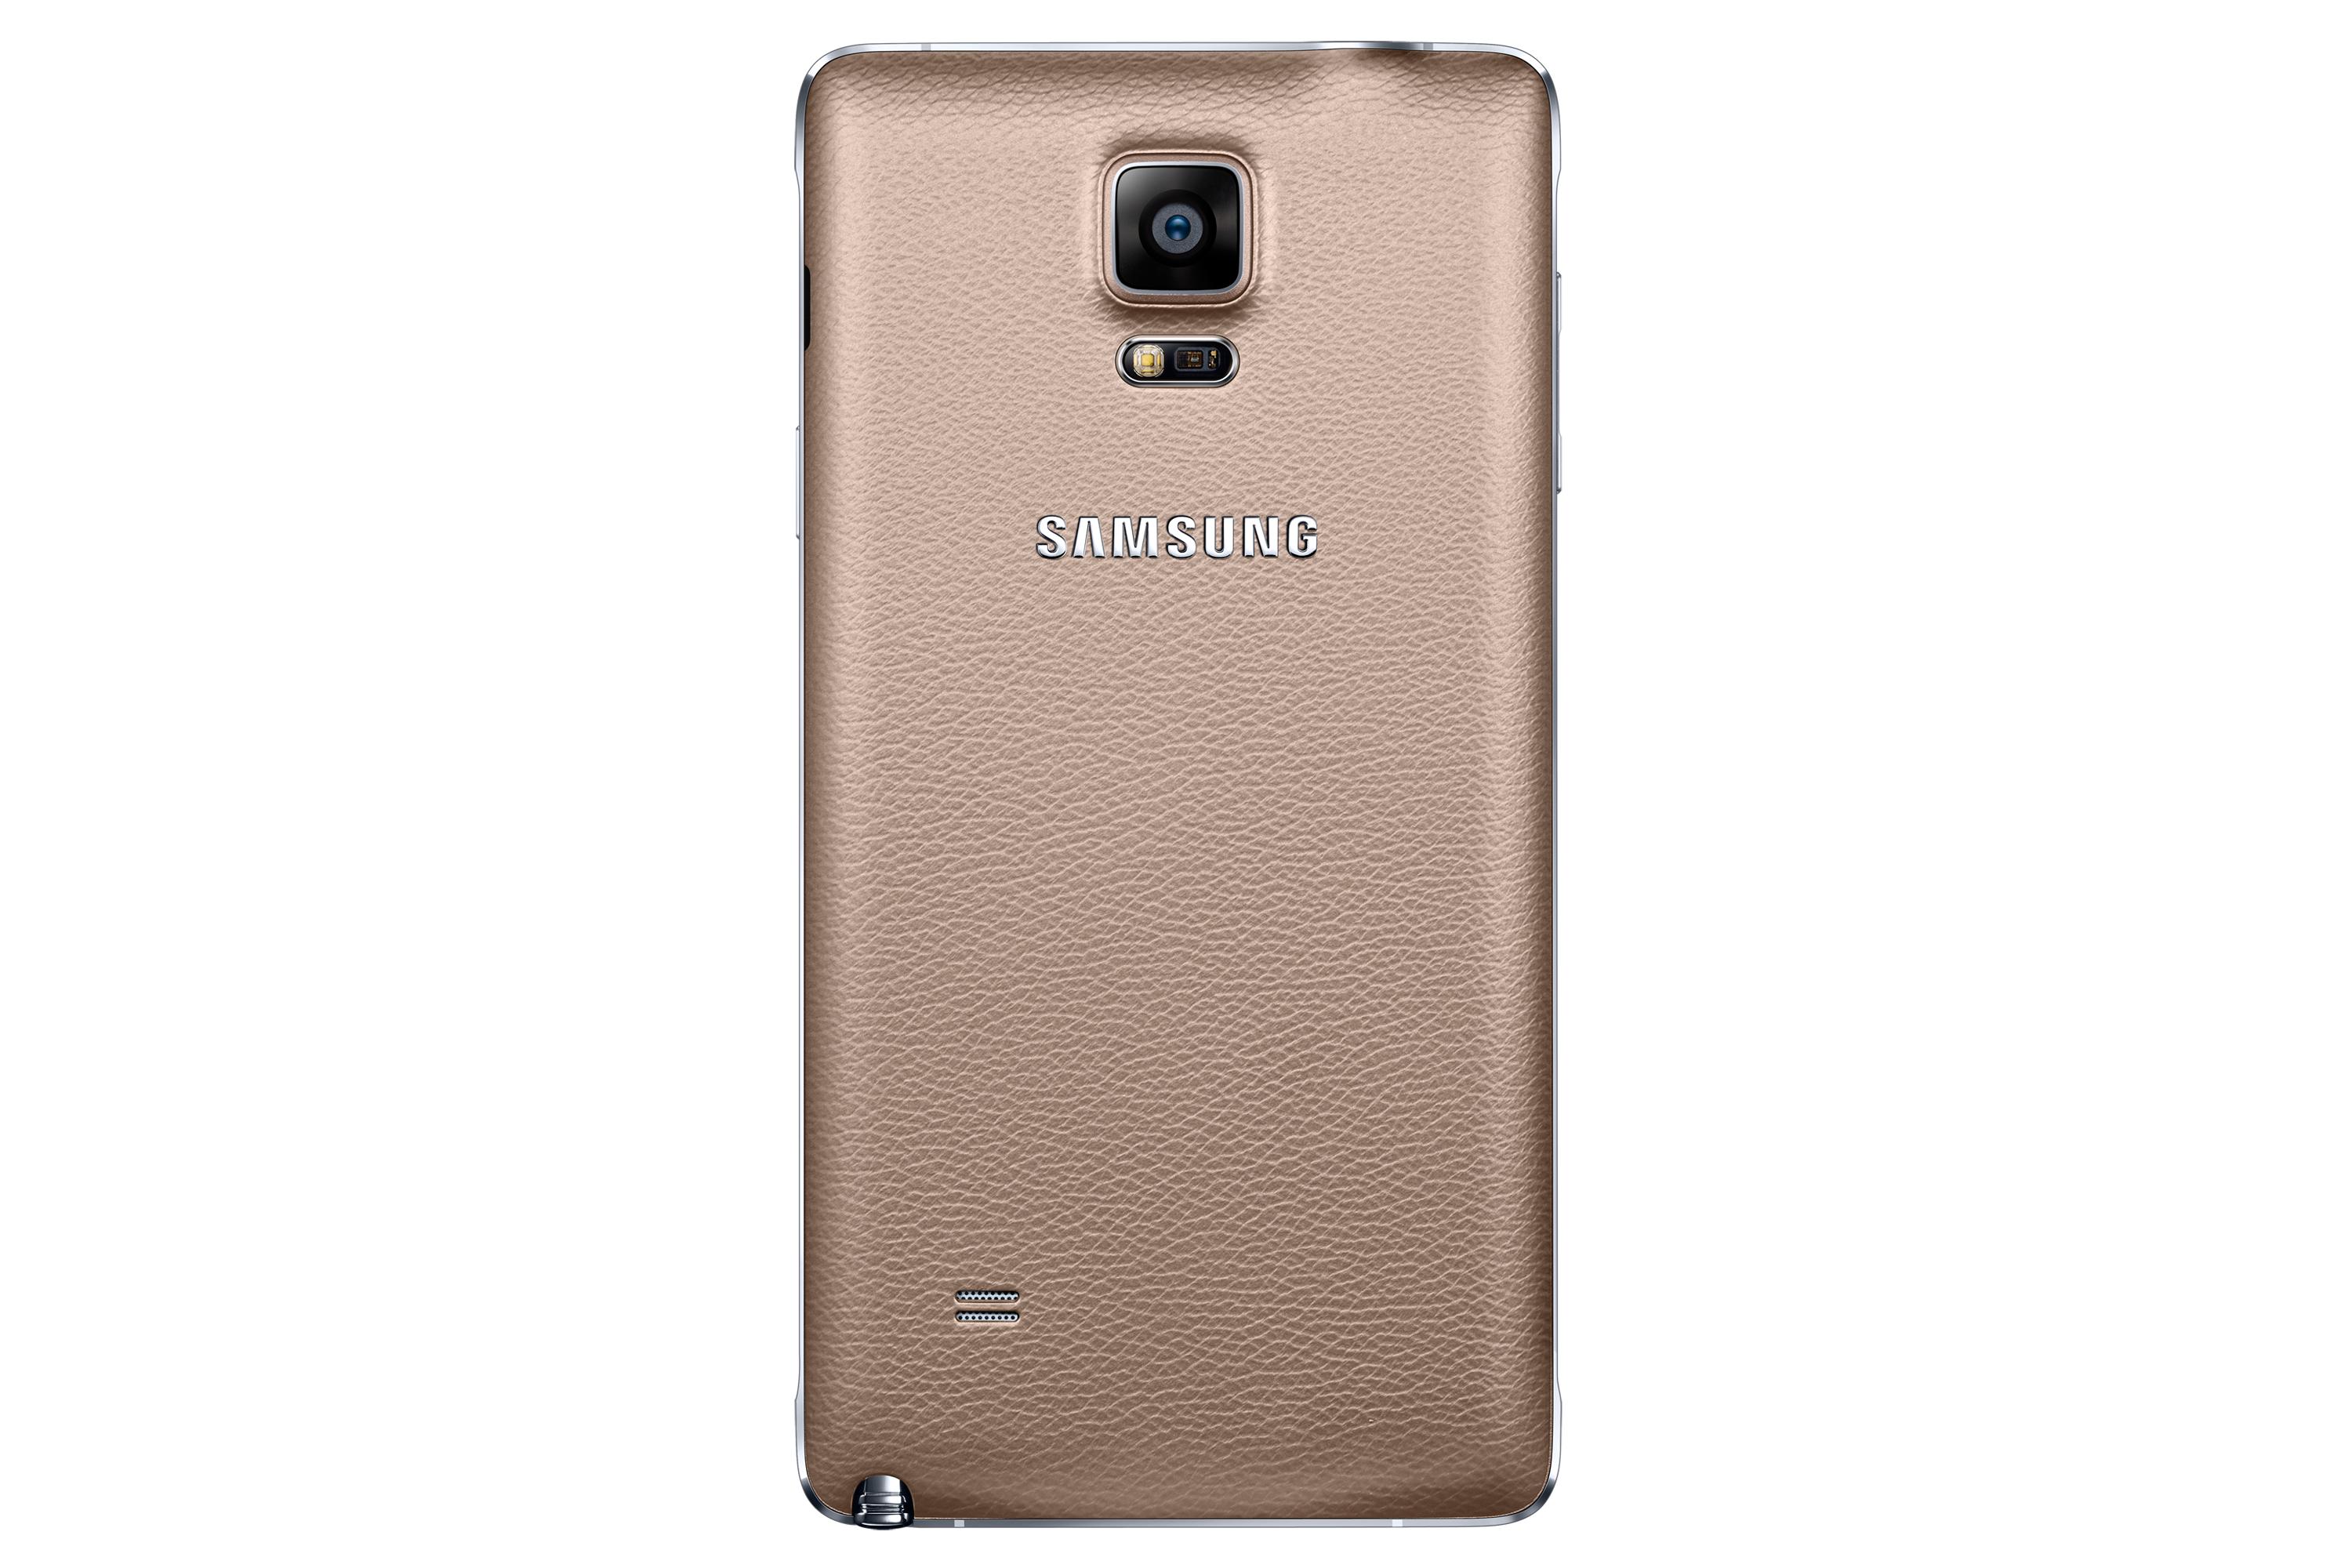 Back Cover (Galaxy Note 4)